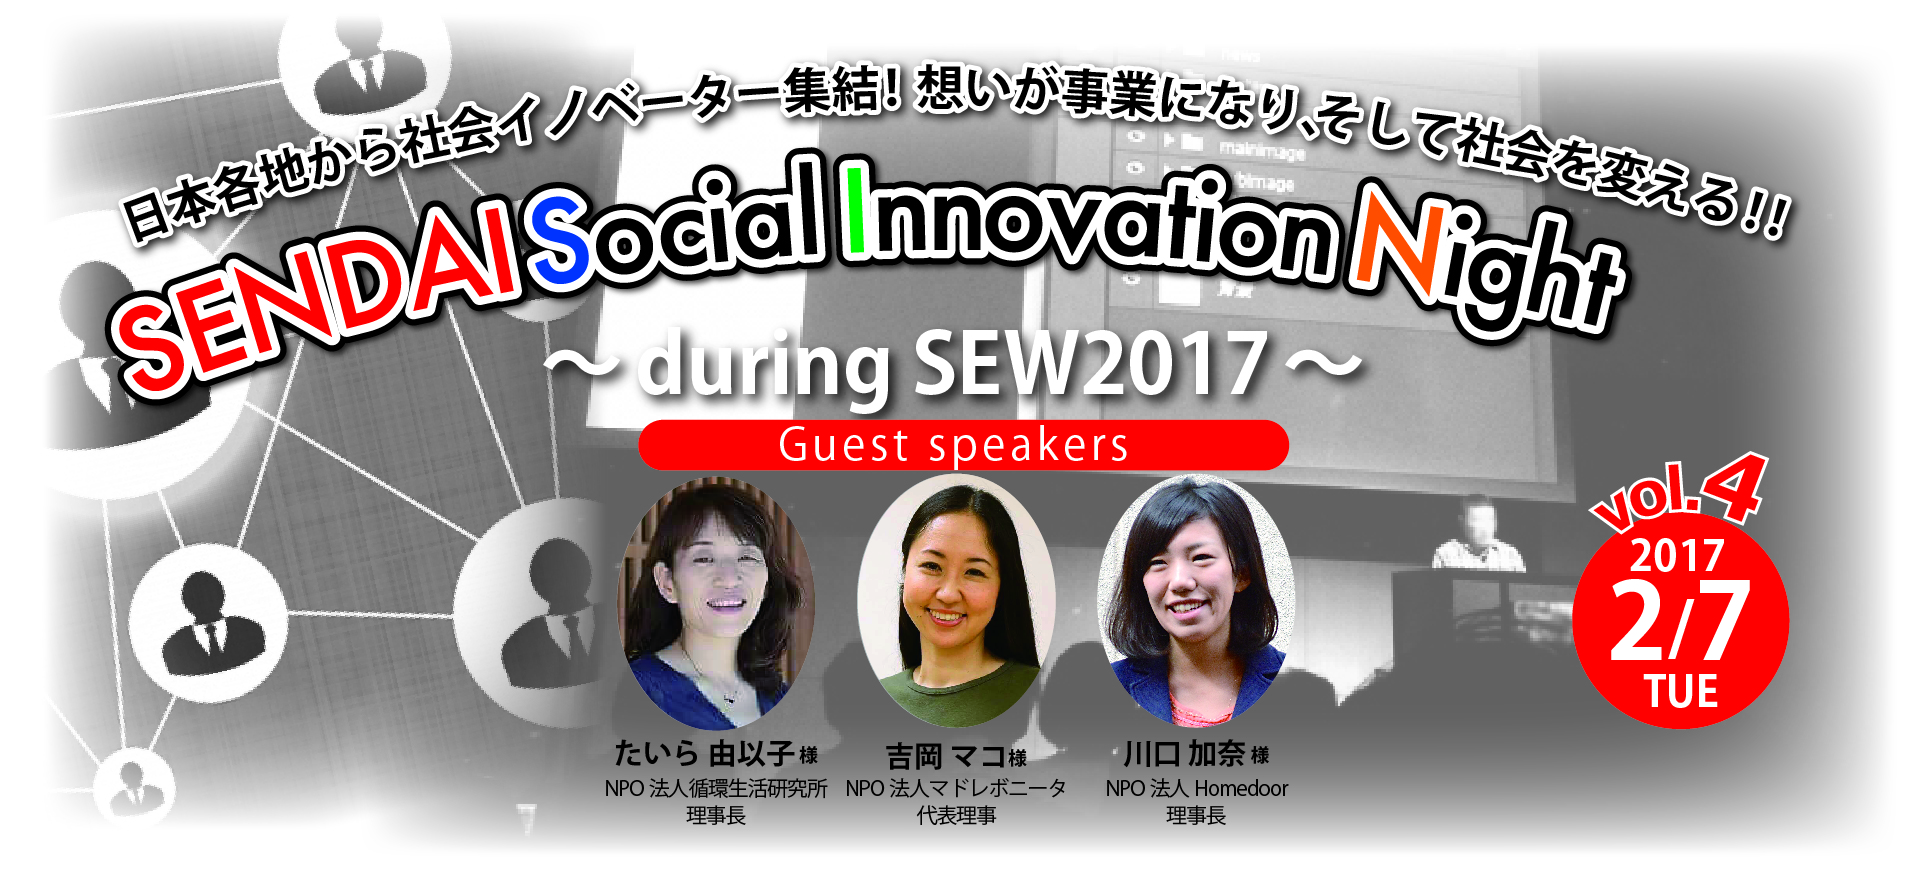 SENDAI Social Innovation Night Vol.4 during SEW2017